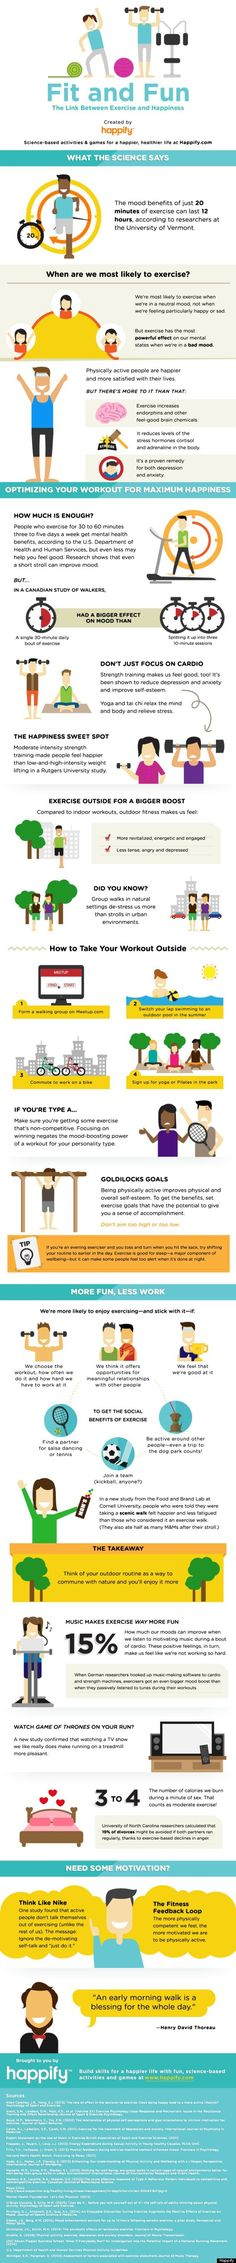 All The Ways Exercise Makes Us Happier